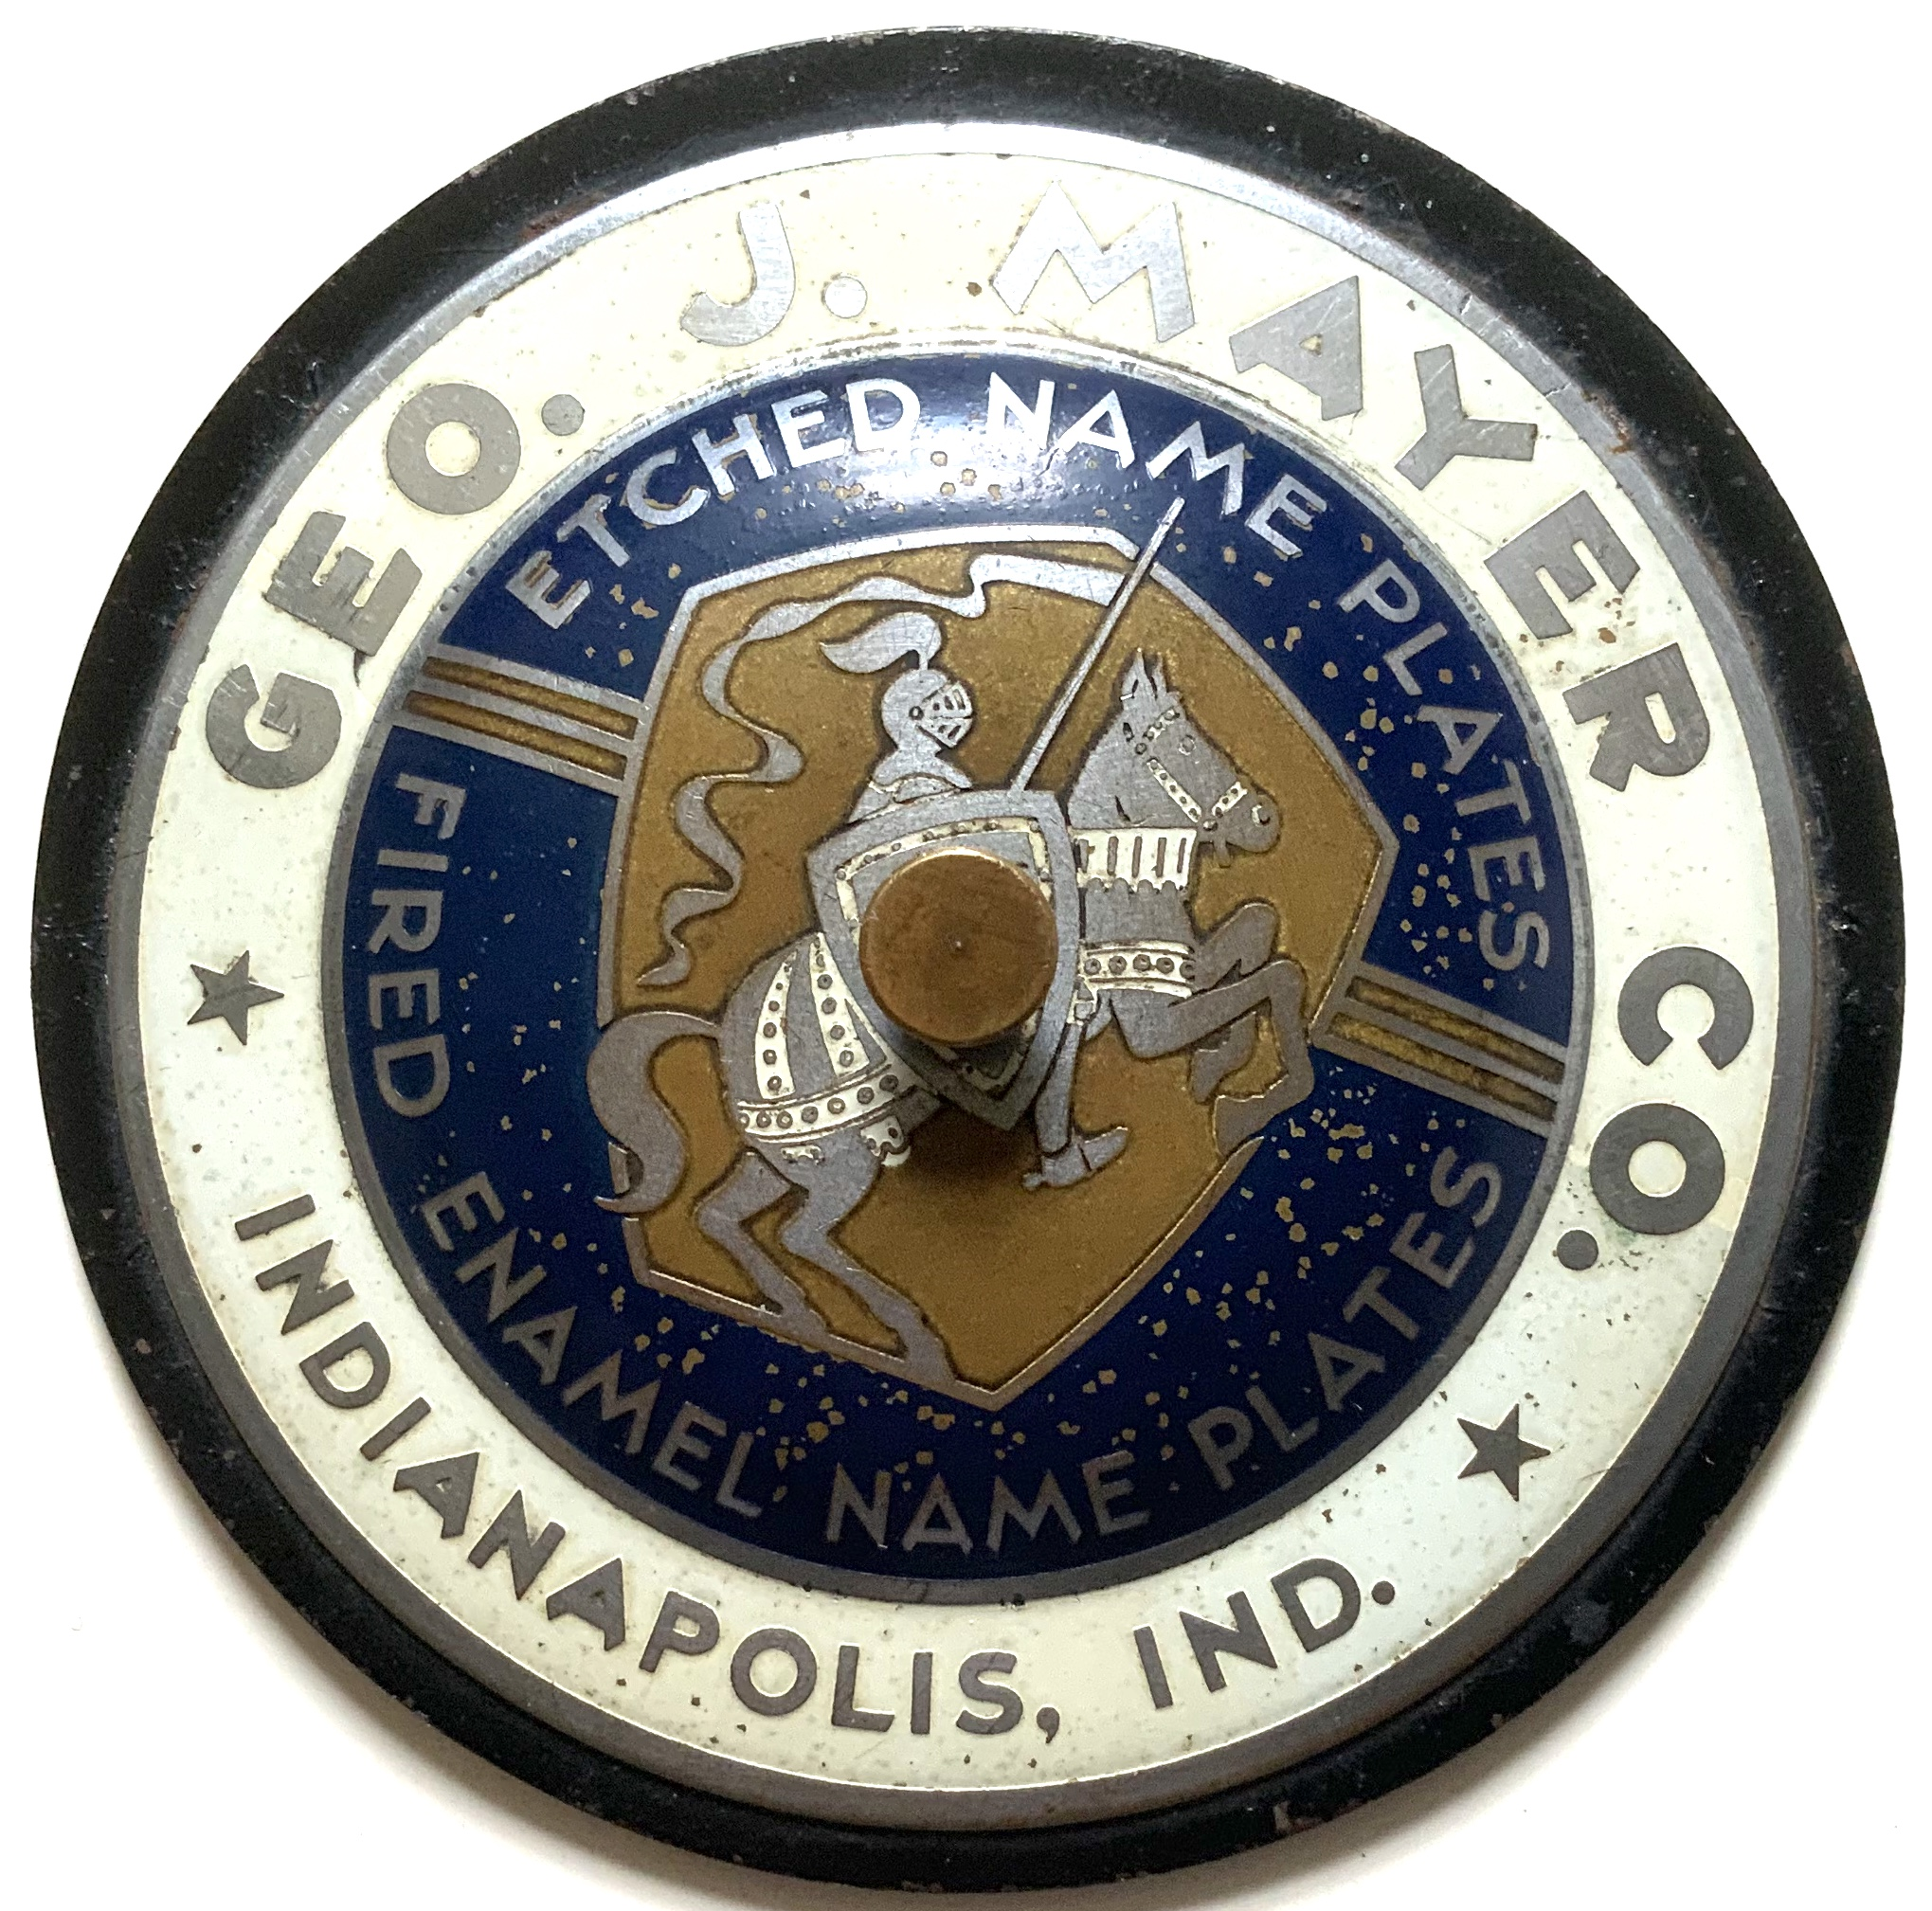 J695GEORGE J. MAYER CO. SHERIFF'S BADGE MAKER - INDIANAPOLIS PAPERWEIGHT